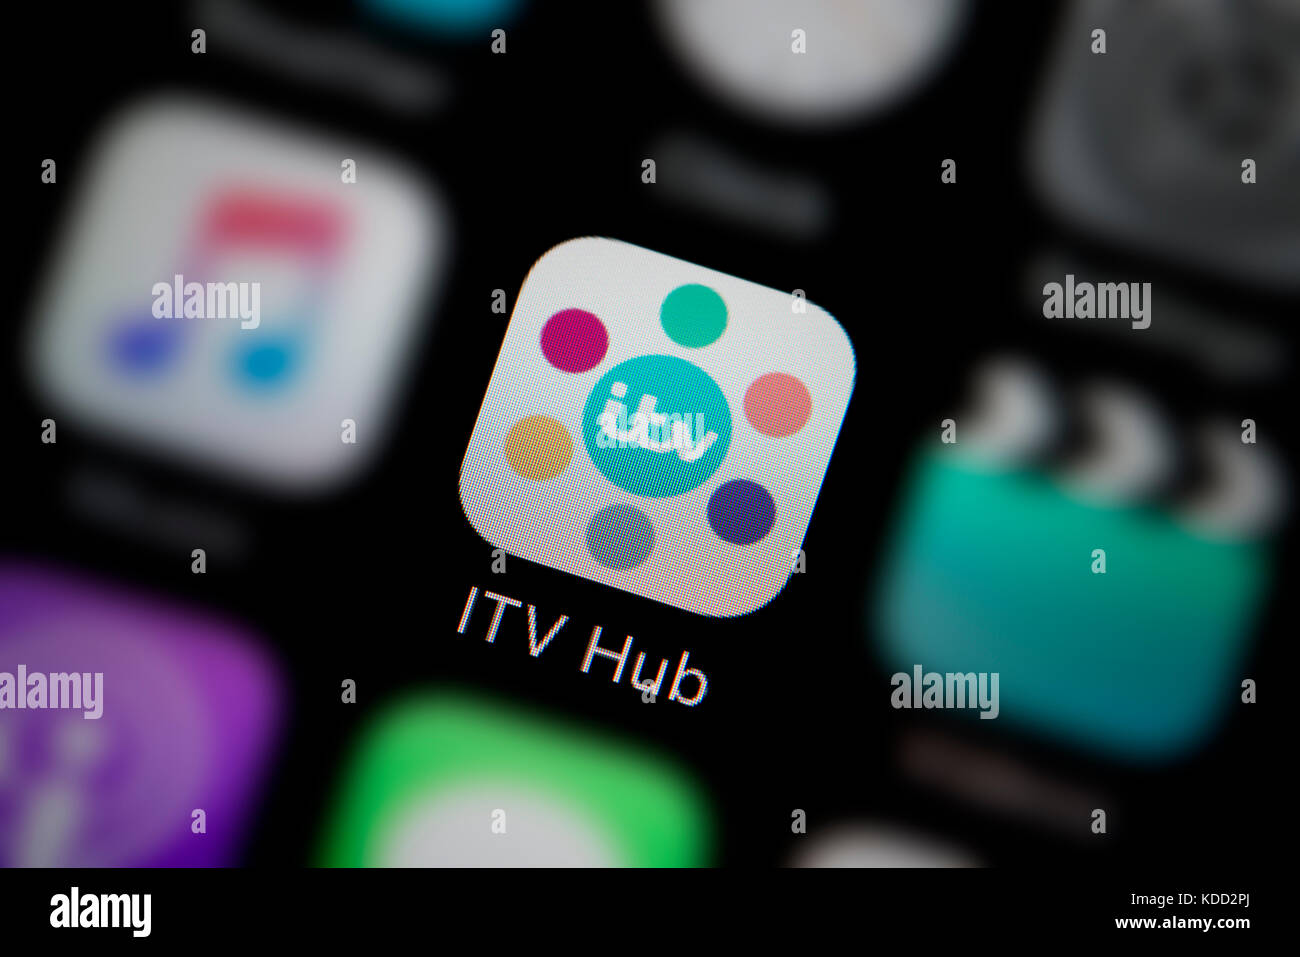 A close up shot of the logo representing ITV Hub app icon  as seen     A close up shot of the logo representing ITV Hub app icon  as seen on the  screen of a smart phone  Editorial use only